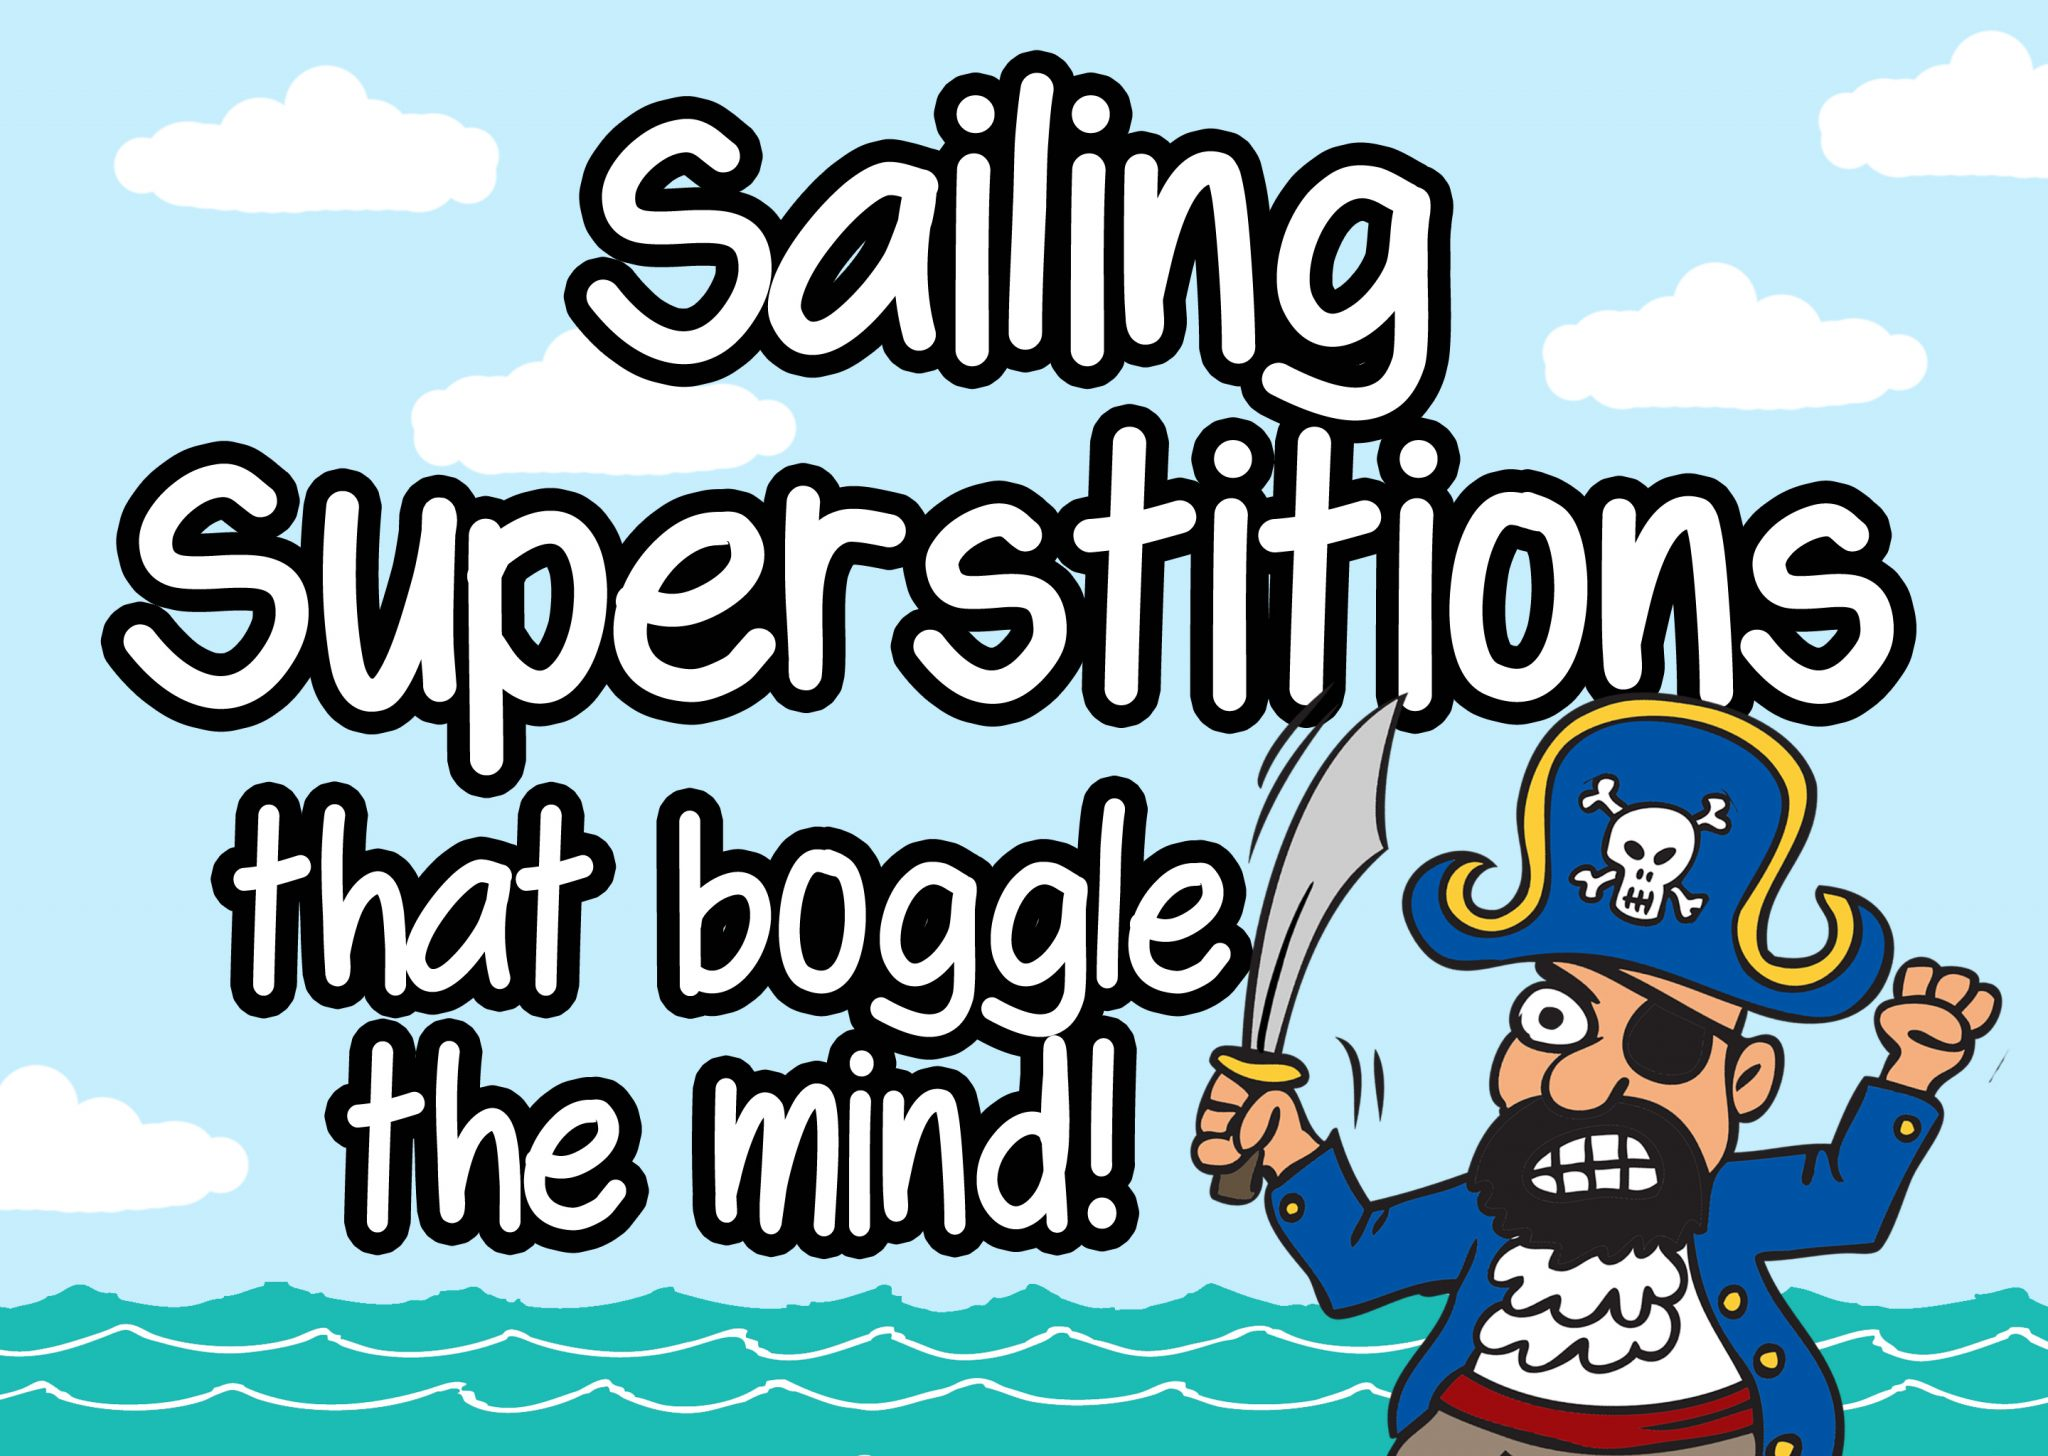 sailing-superstitions